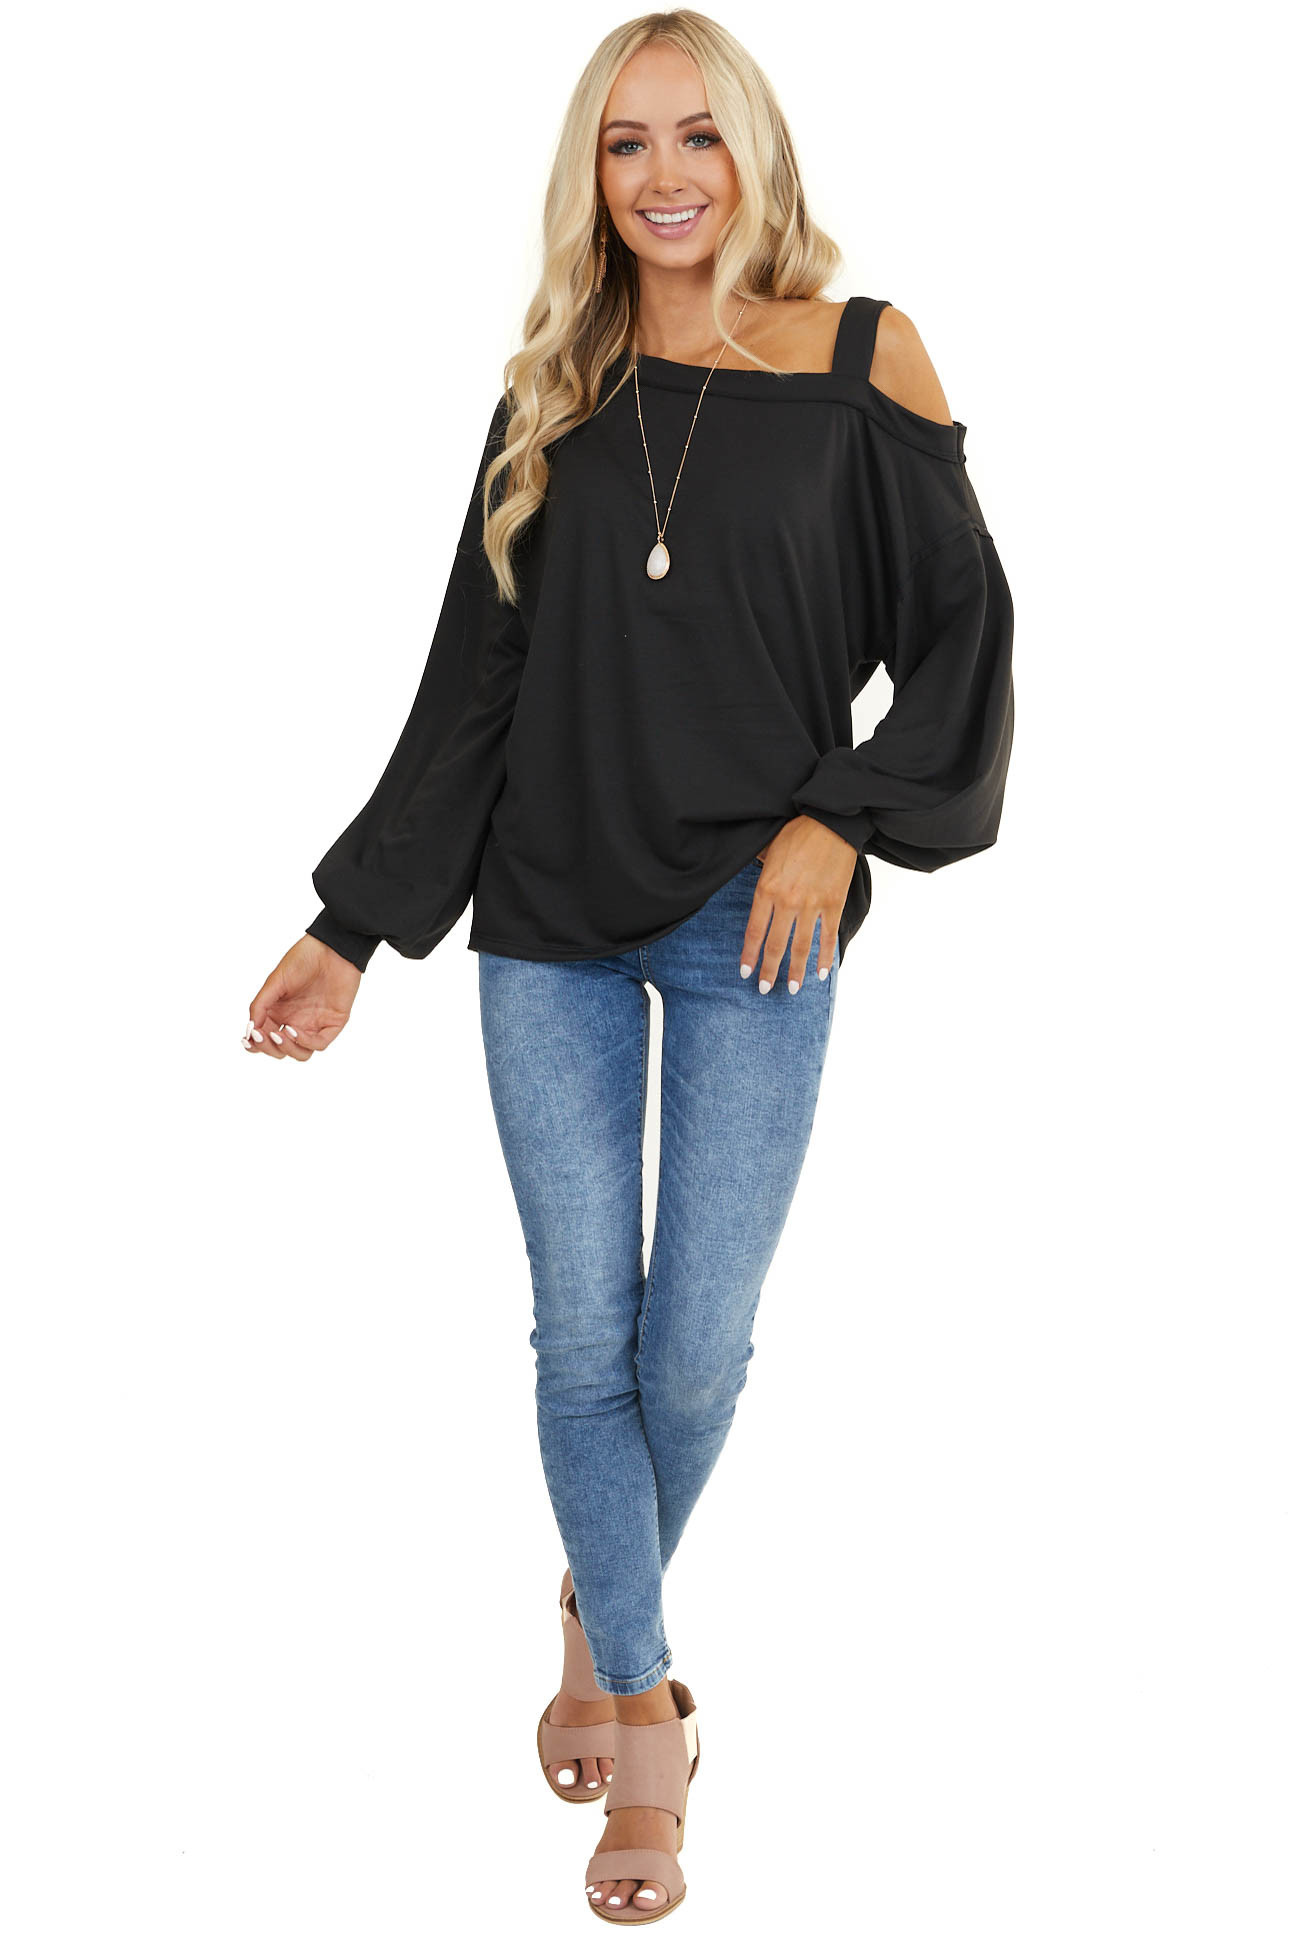 Black Cold Shoulder Knit Top with Long Sleeves